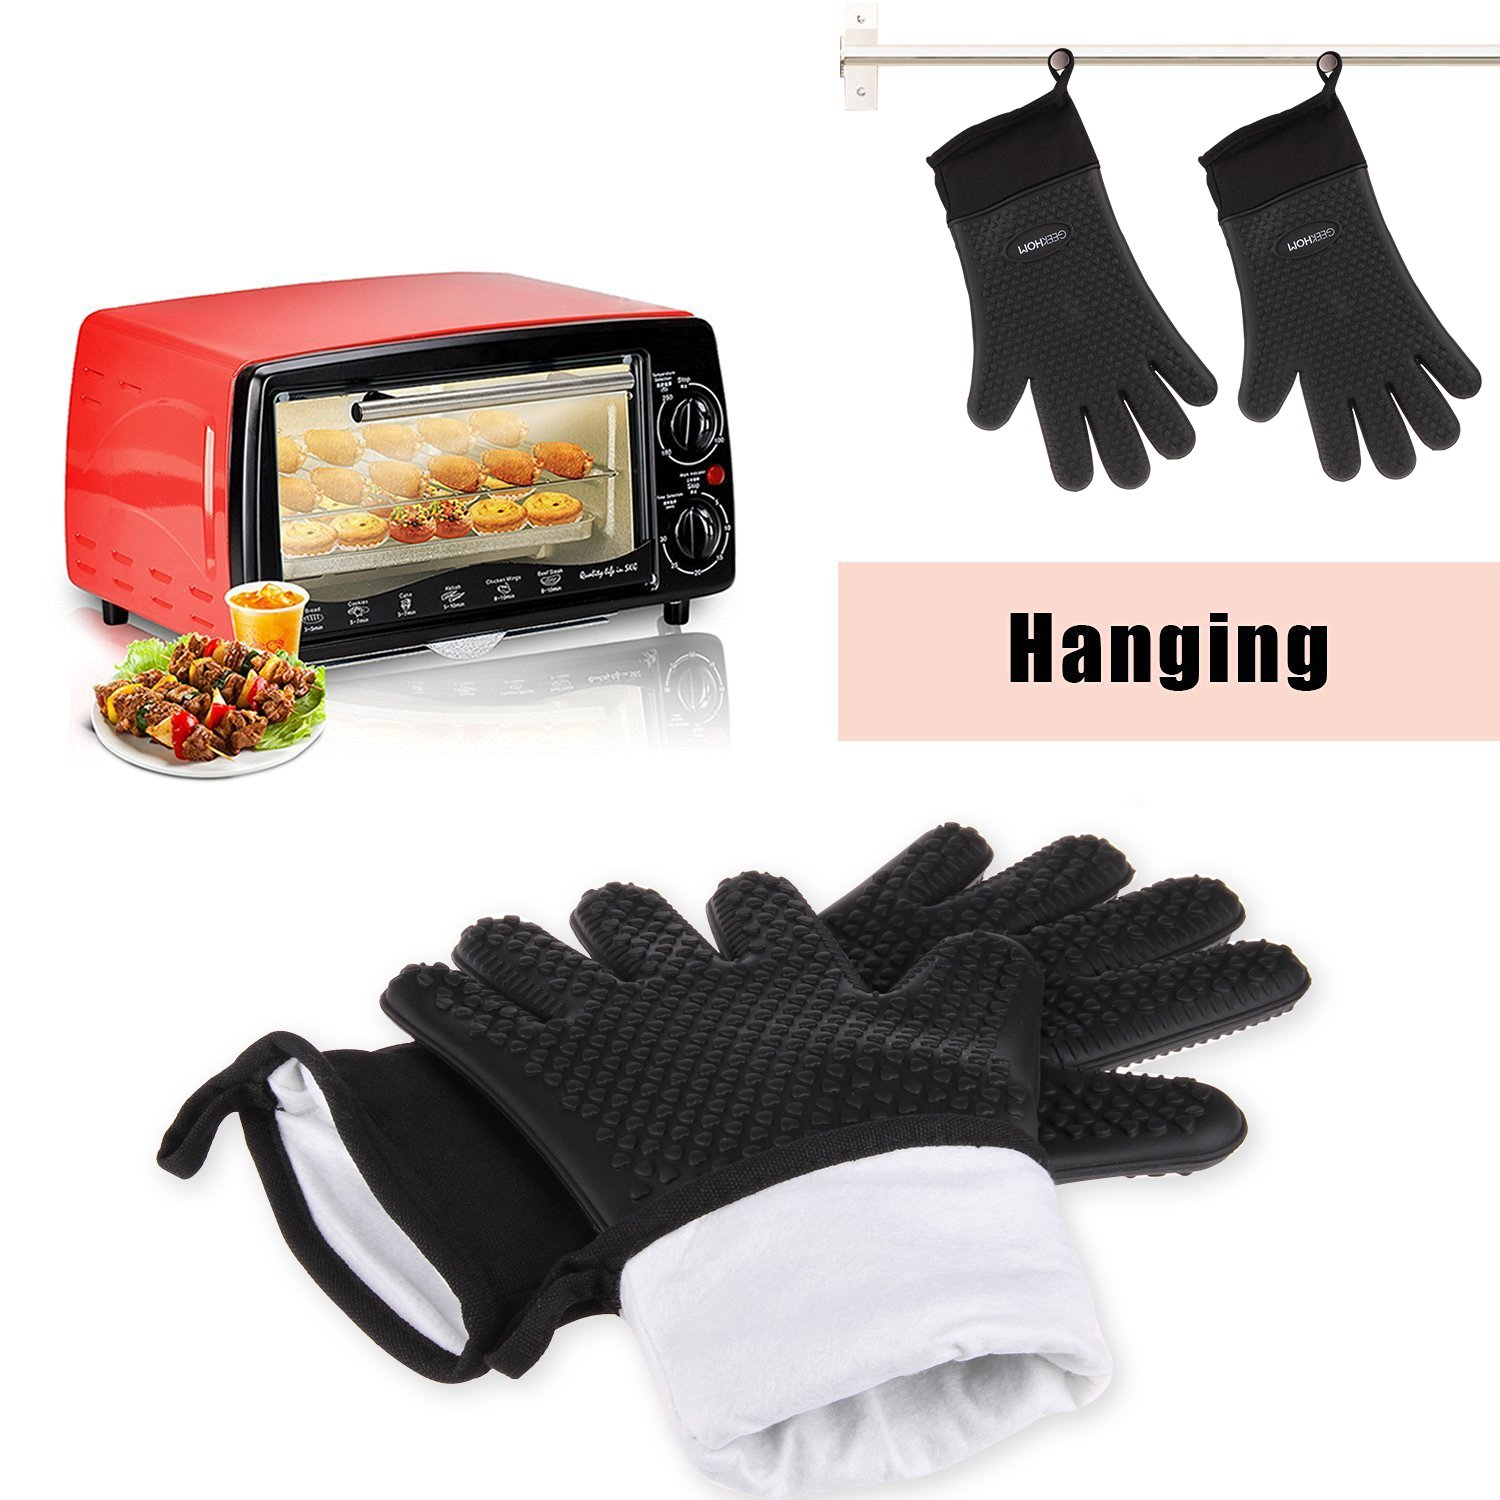 GEEKHOM Grilling Gloves, Heat Resistant Gloves BBQ Kitchen Silicone Oven Mitts, Long Waterproof Non-Slip Potholder for Barbecue, Cooking, Baking (Black) by GEEKHOM (Image #7)